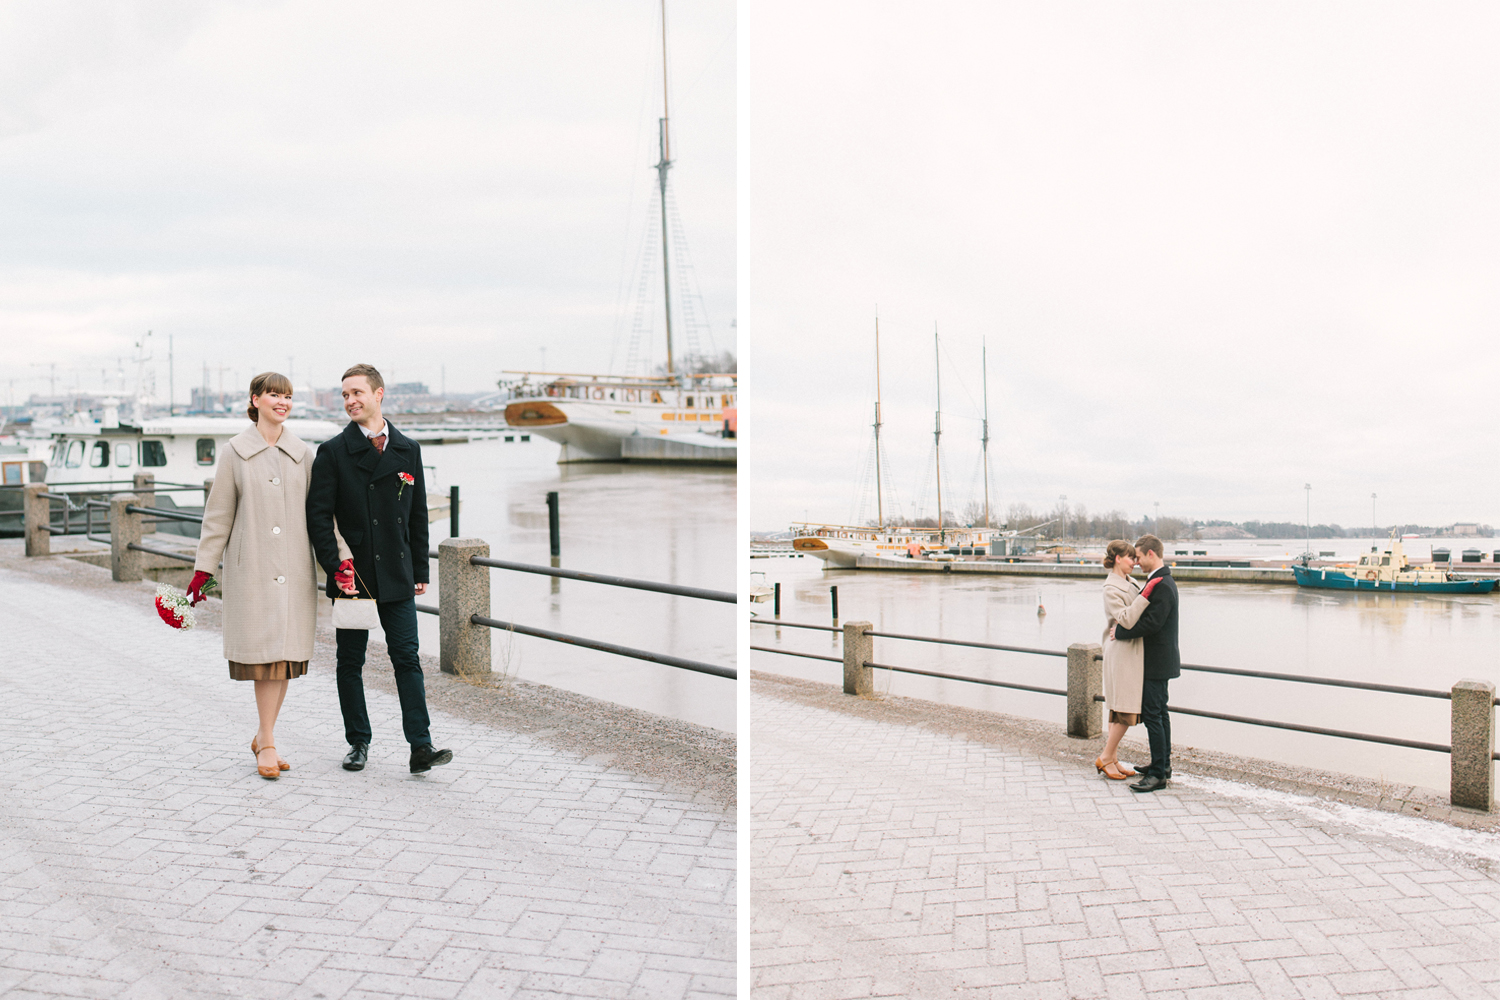 Marjo & Petrus_Helsinki winter wedding4